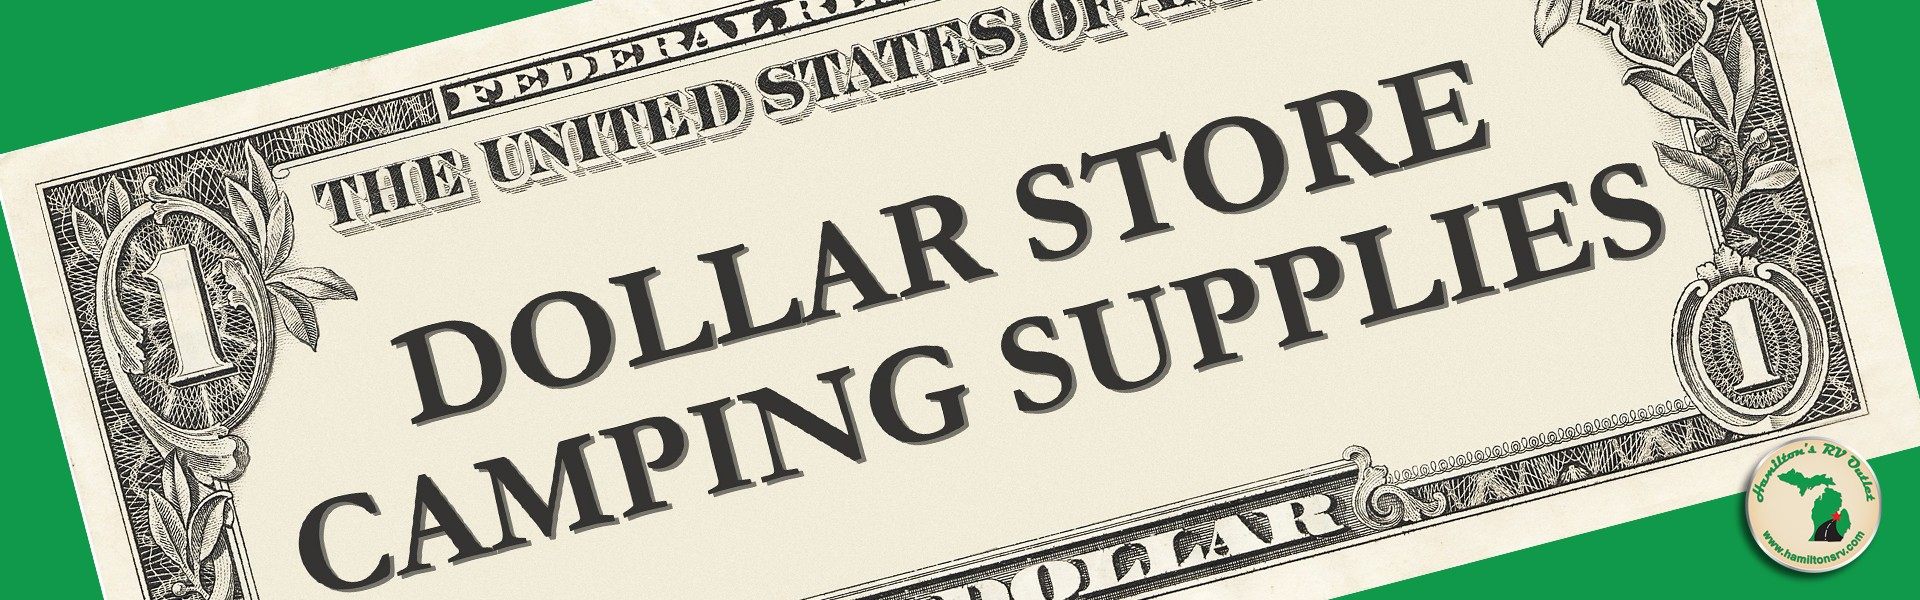 dollarstore camping supplies Banner